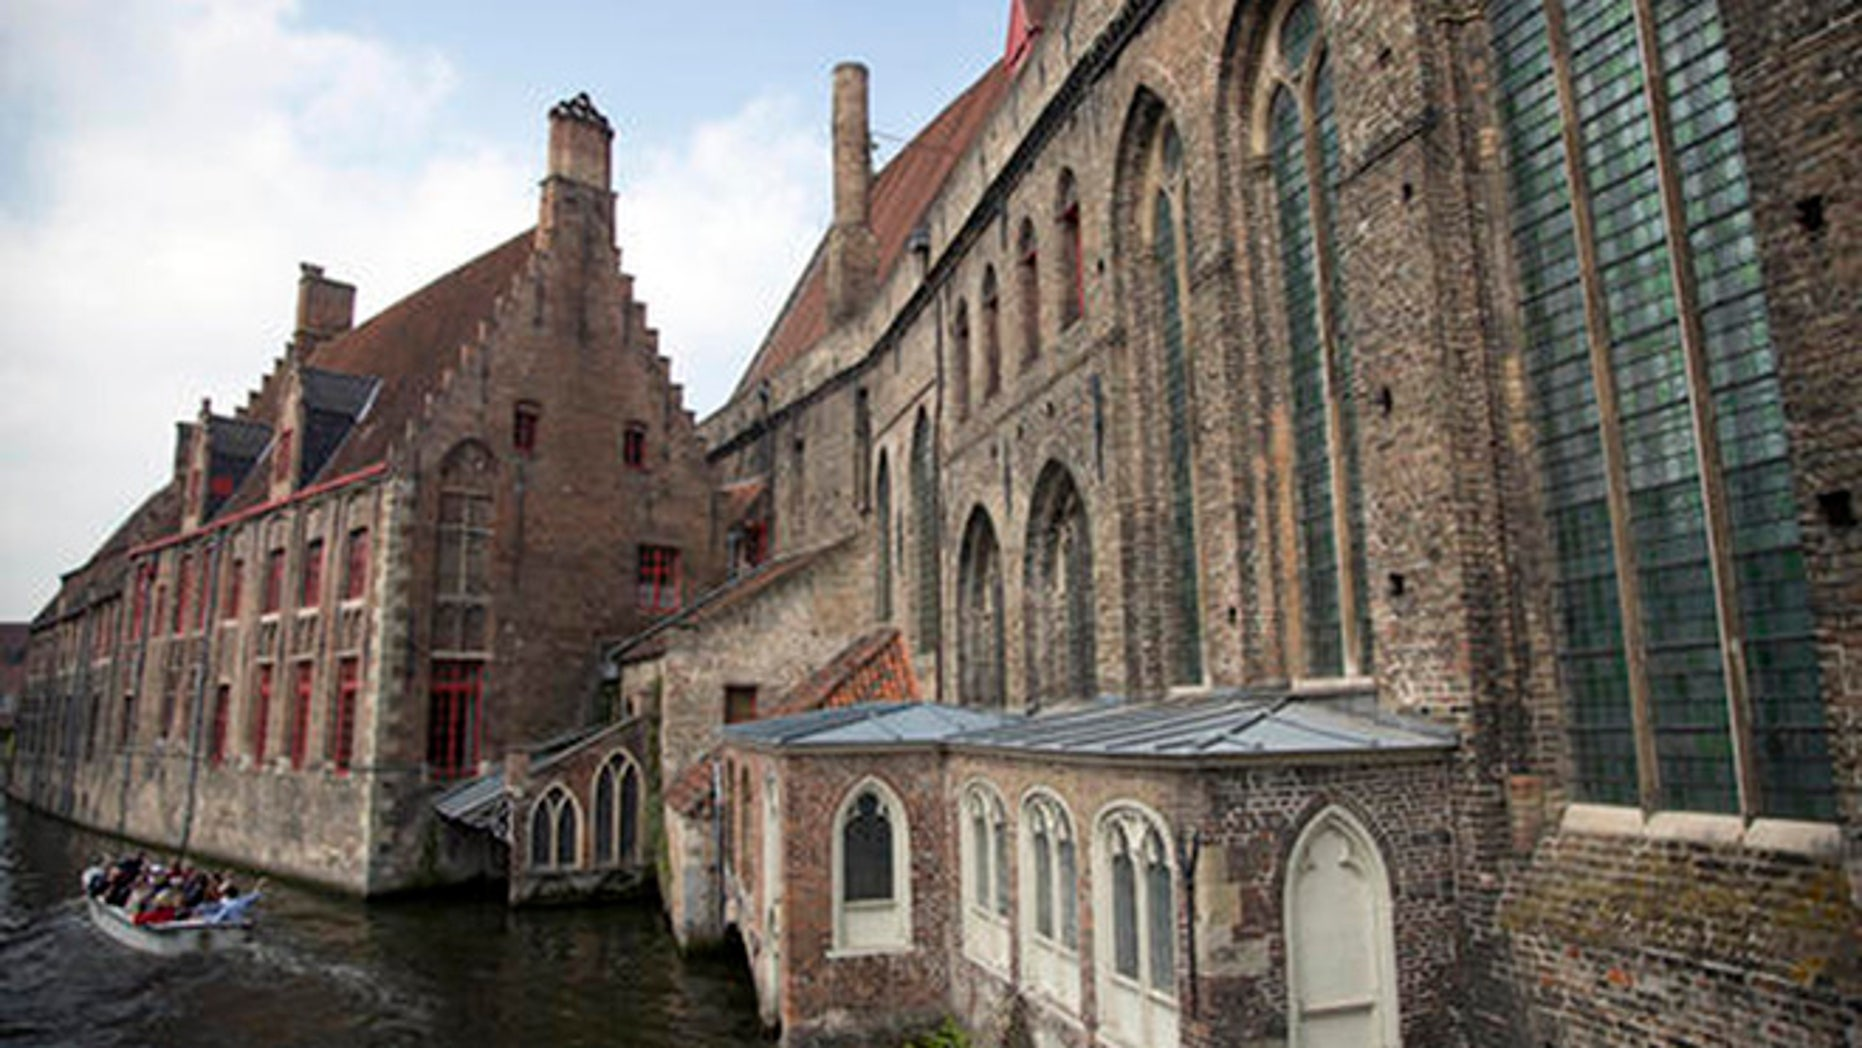 Tourists ride in a boat down a main canal past the Hospital St. Jan in Bruges, Belgium on Thursday, May 26, 2016.